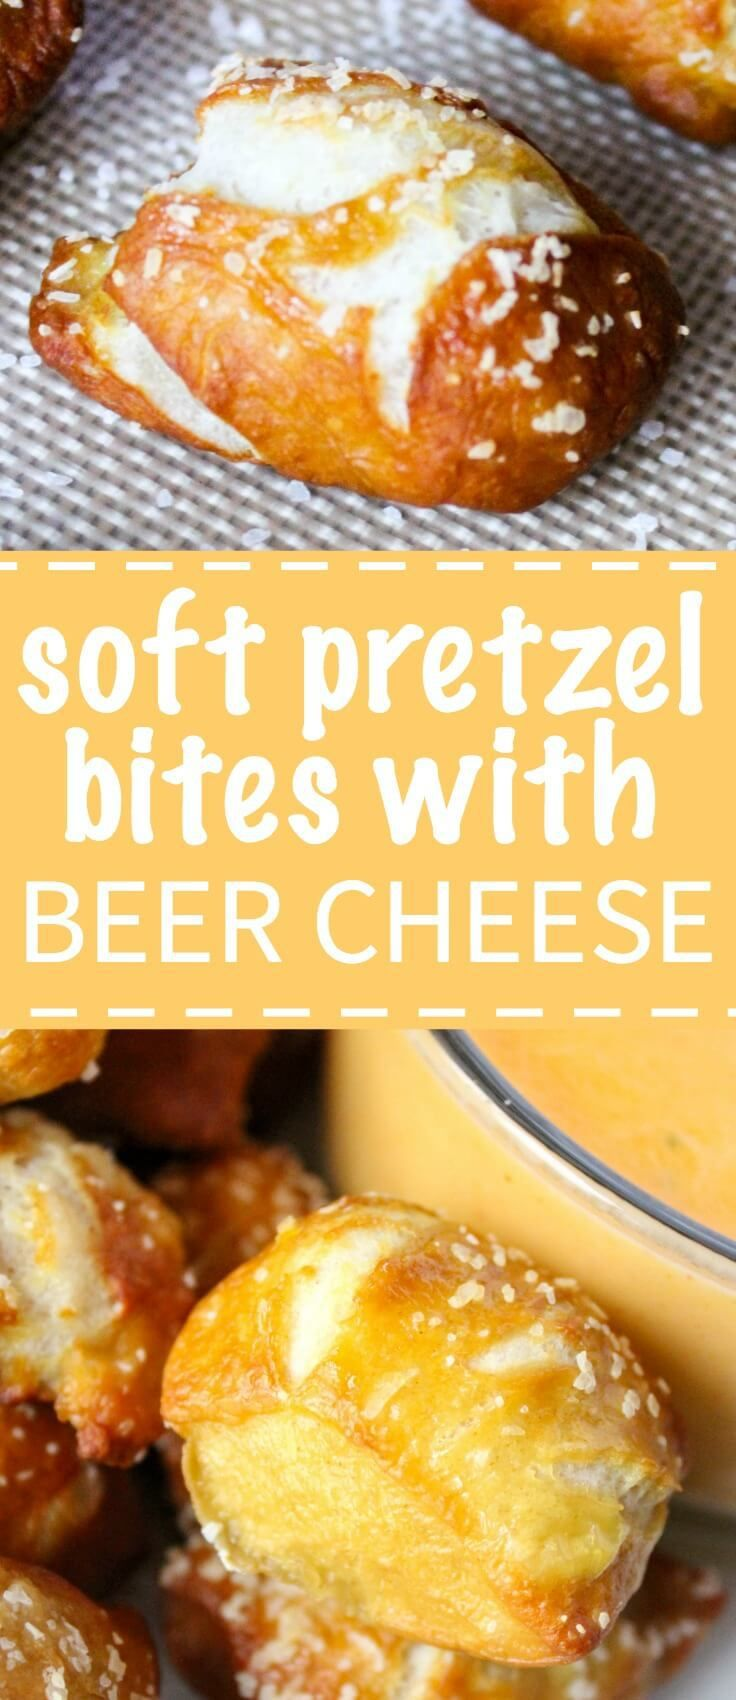 Soft and chewy homemade pretzel bites that are salty and airy with a cheddar beer cheese dip.